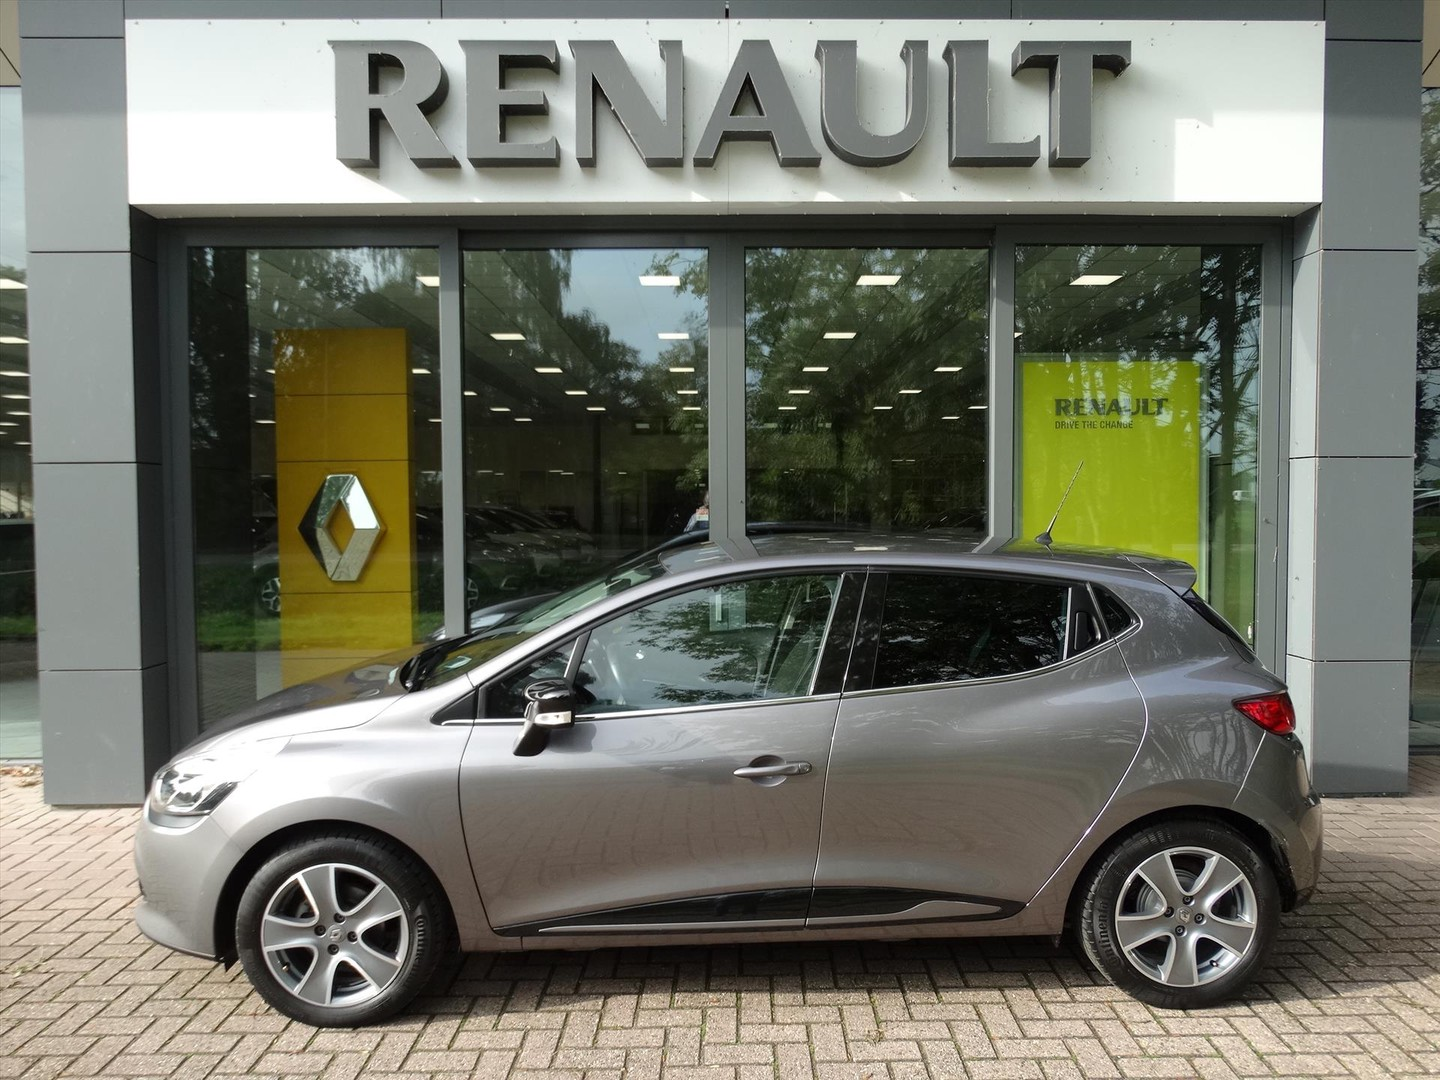 Renault Clio Tce 90 pk night & day